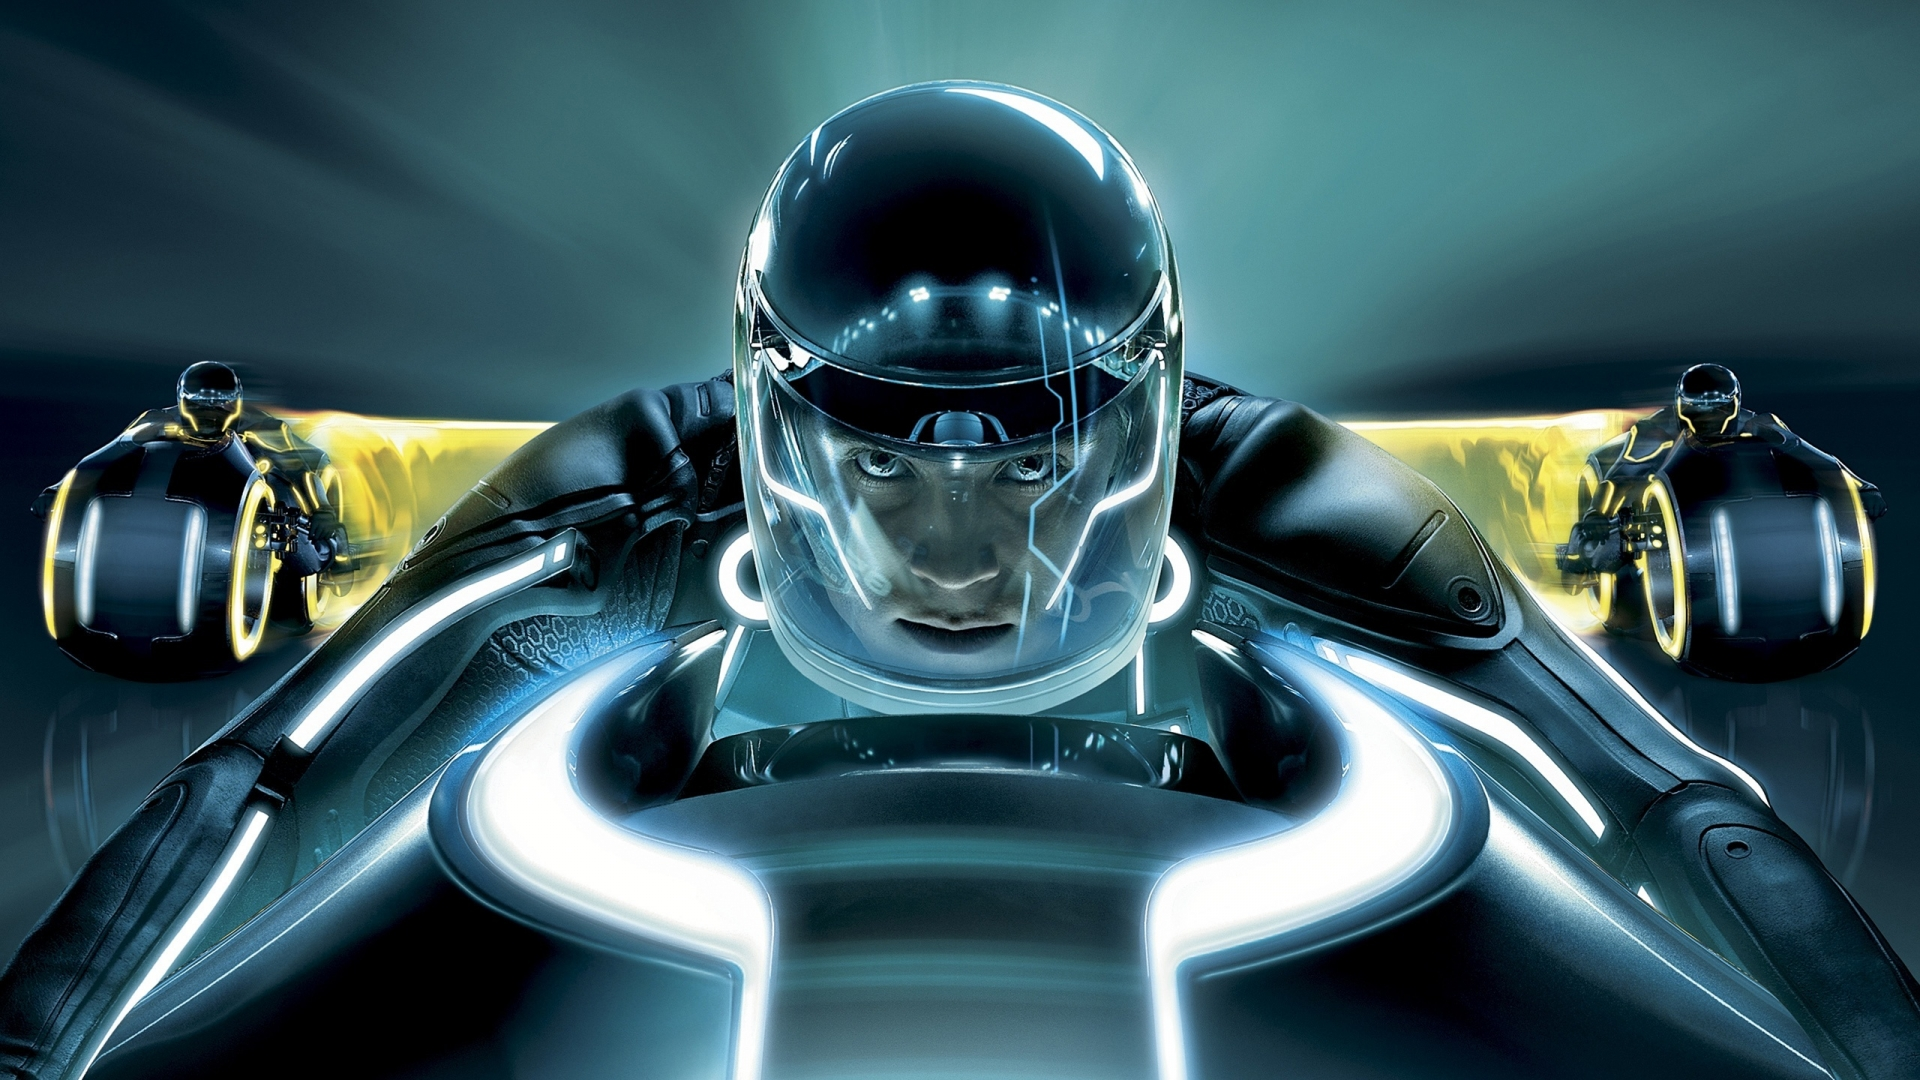 Tron Legacy Movie for 1920 x 1080 HDTV 1080p resolution